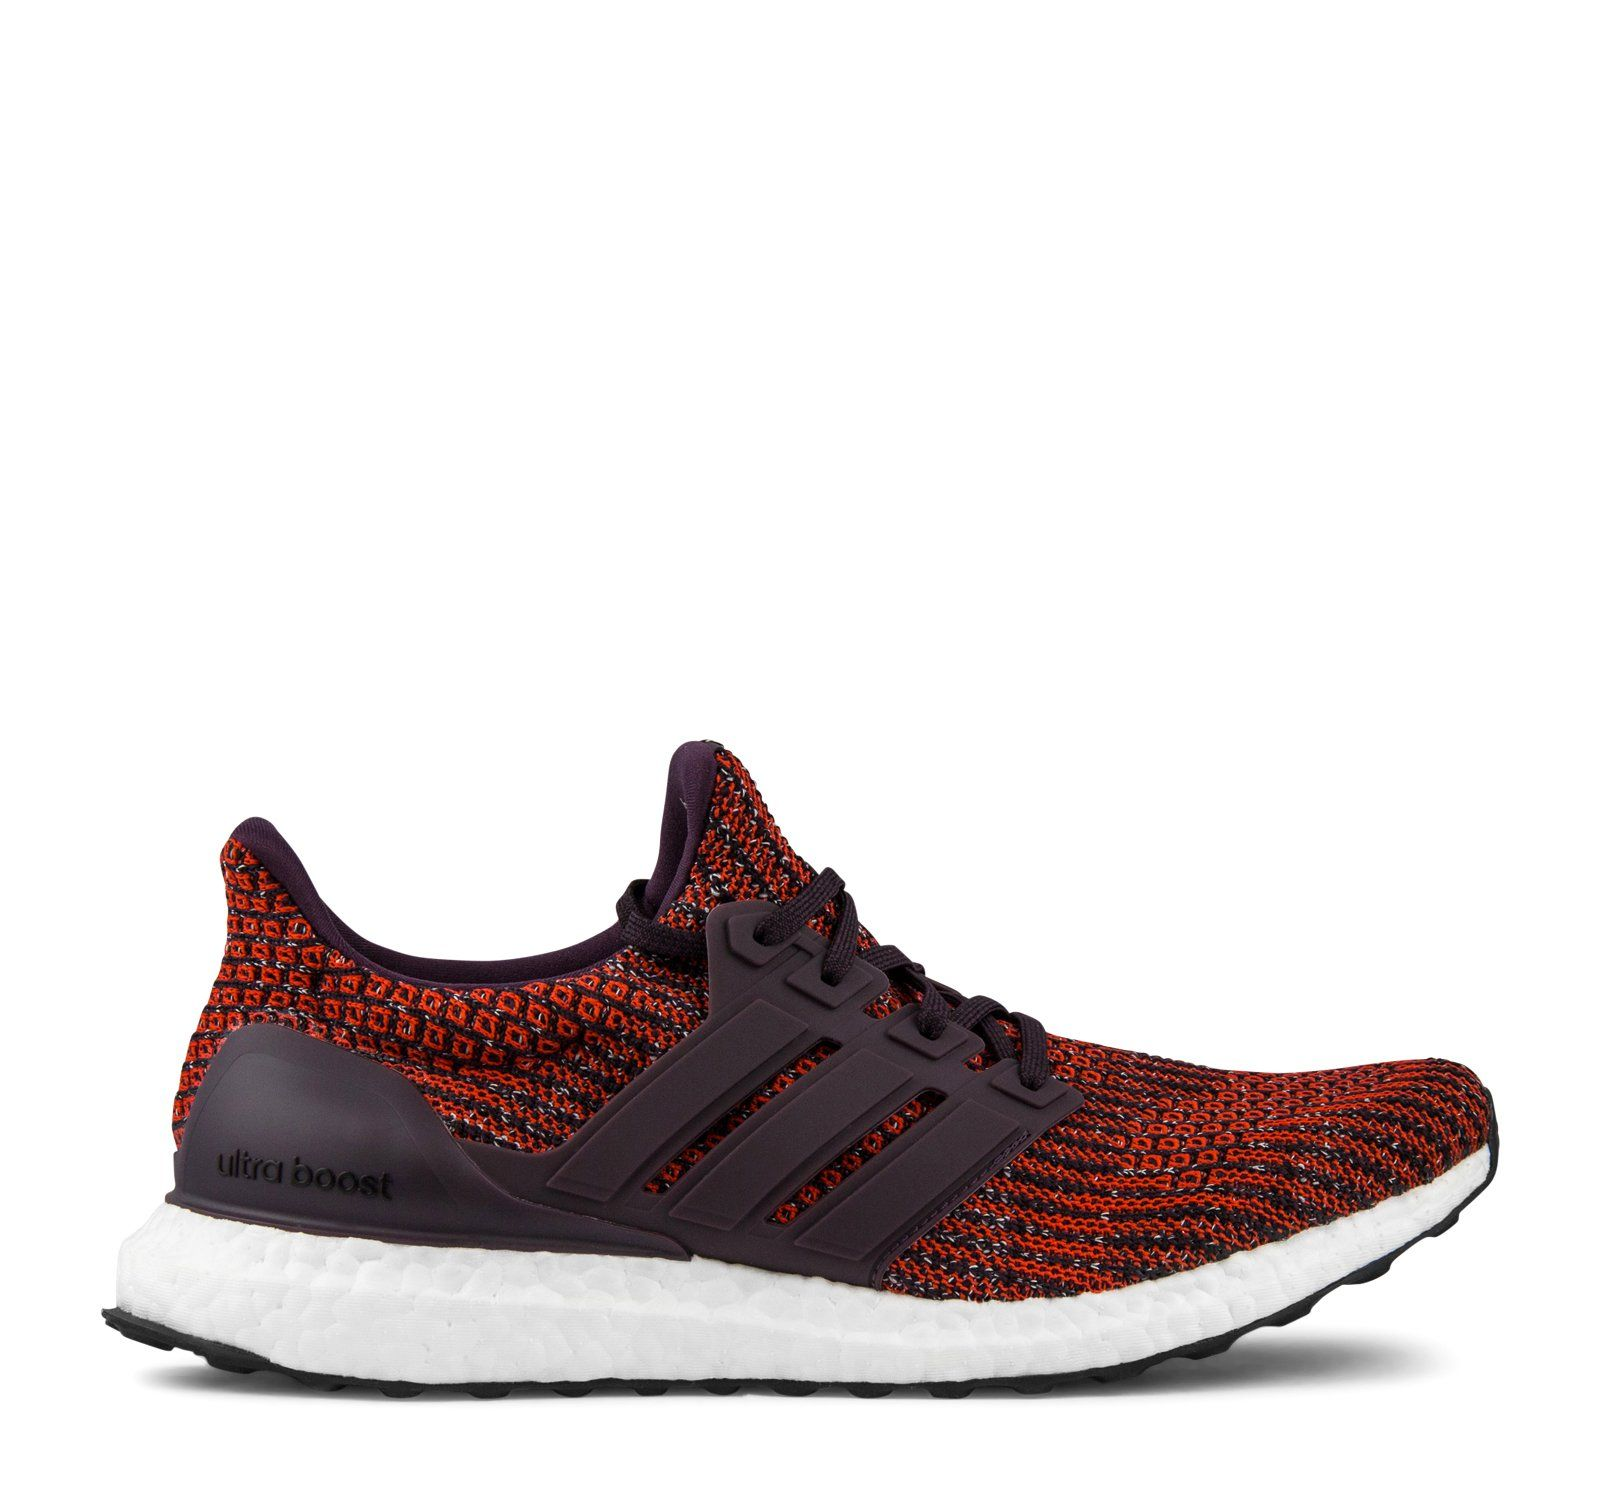 timeless design e4eb2 5a05f Adidas Running UltraBOOST CP9248 Men s - Noble Red